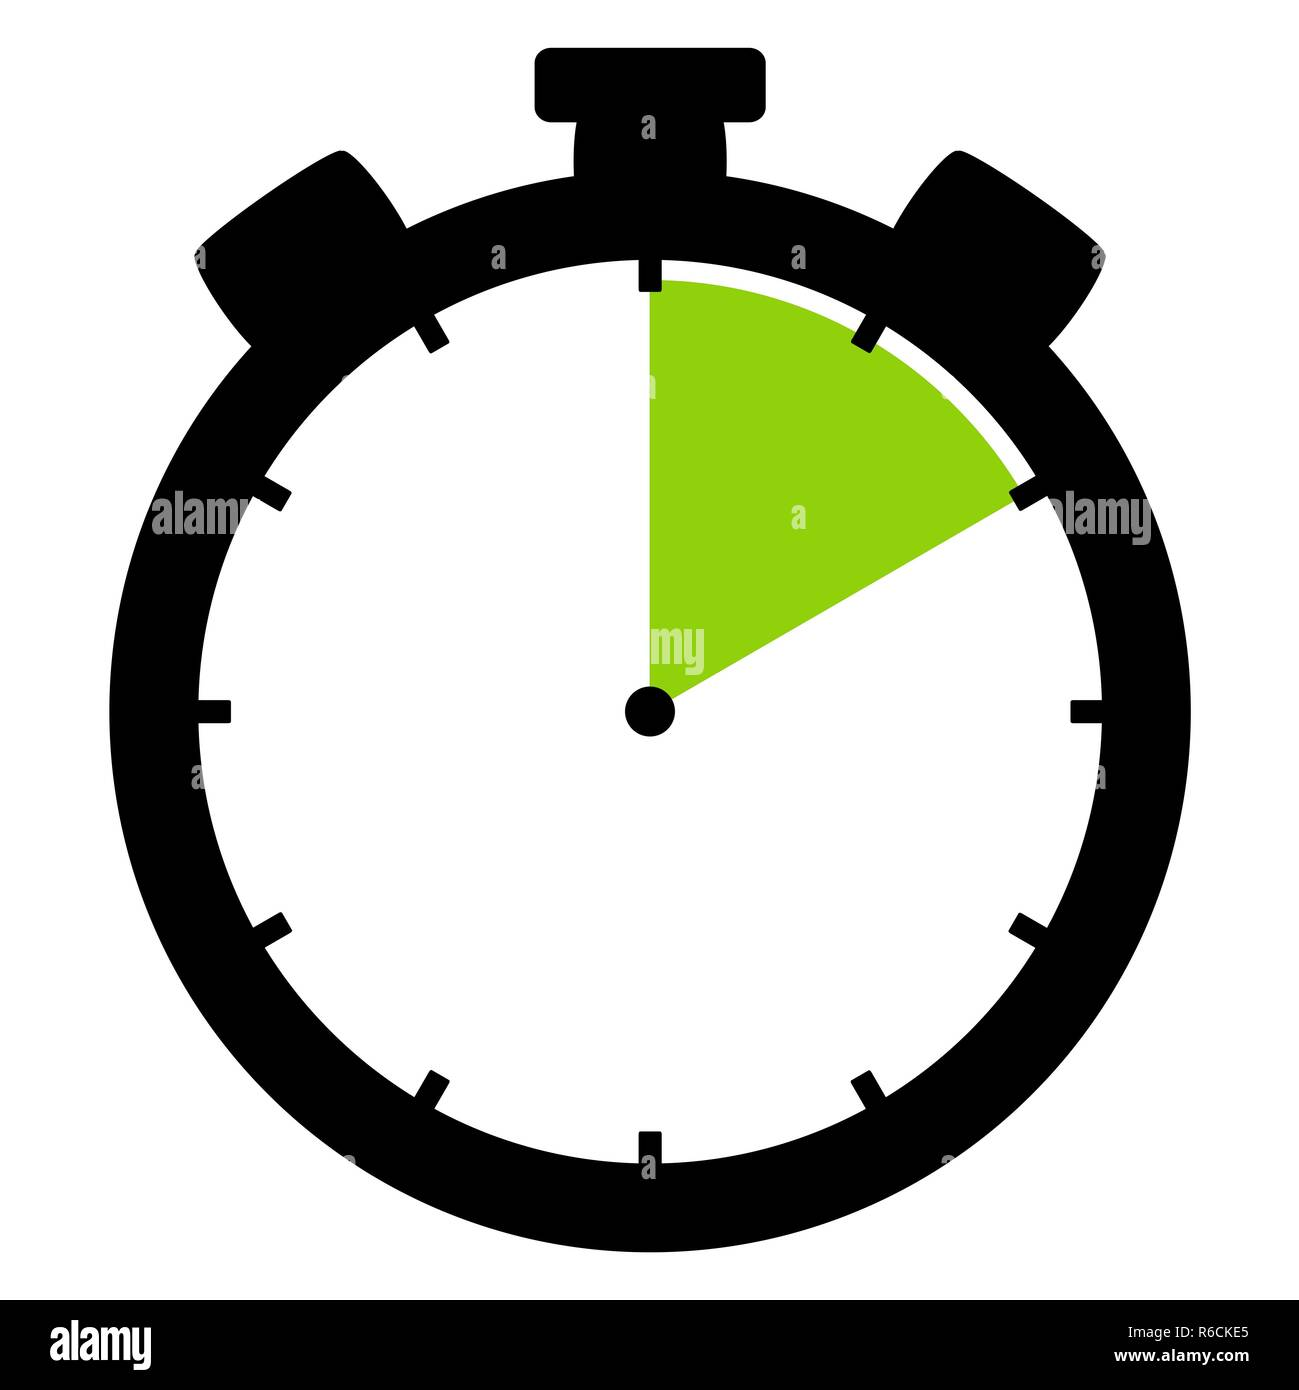 stopwatch icon: 10 minutes 10 seconds or 2 hours - Stock Image